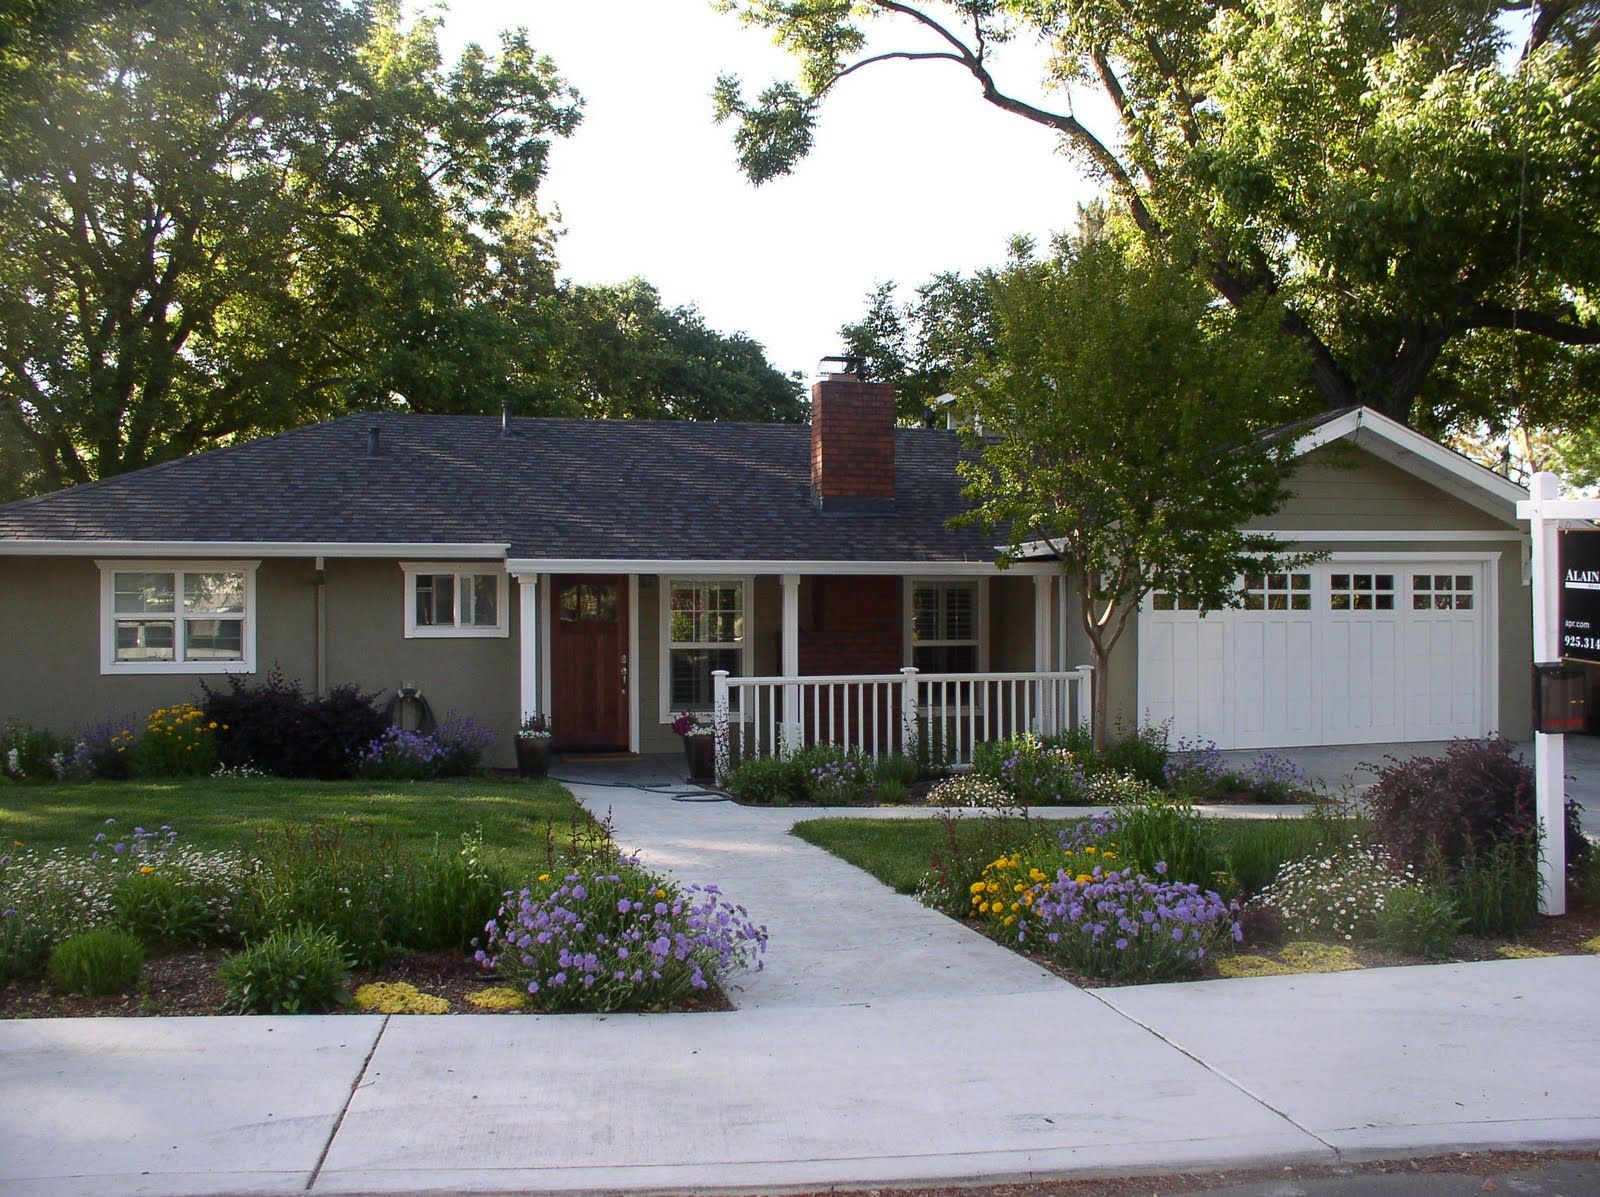 Inspiring marvelous and enchanting exterior color schemes for ranch style homes house paint color combinations exterior home exterior paint colors also